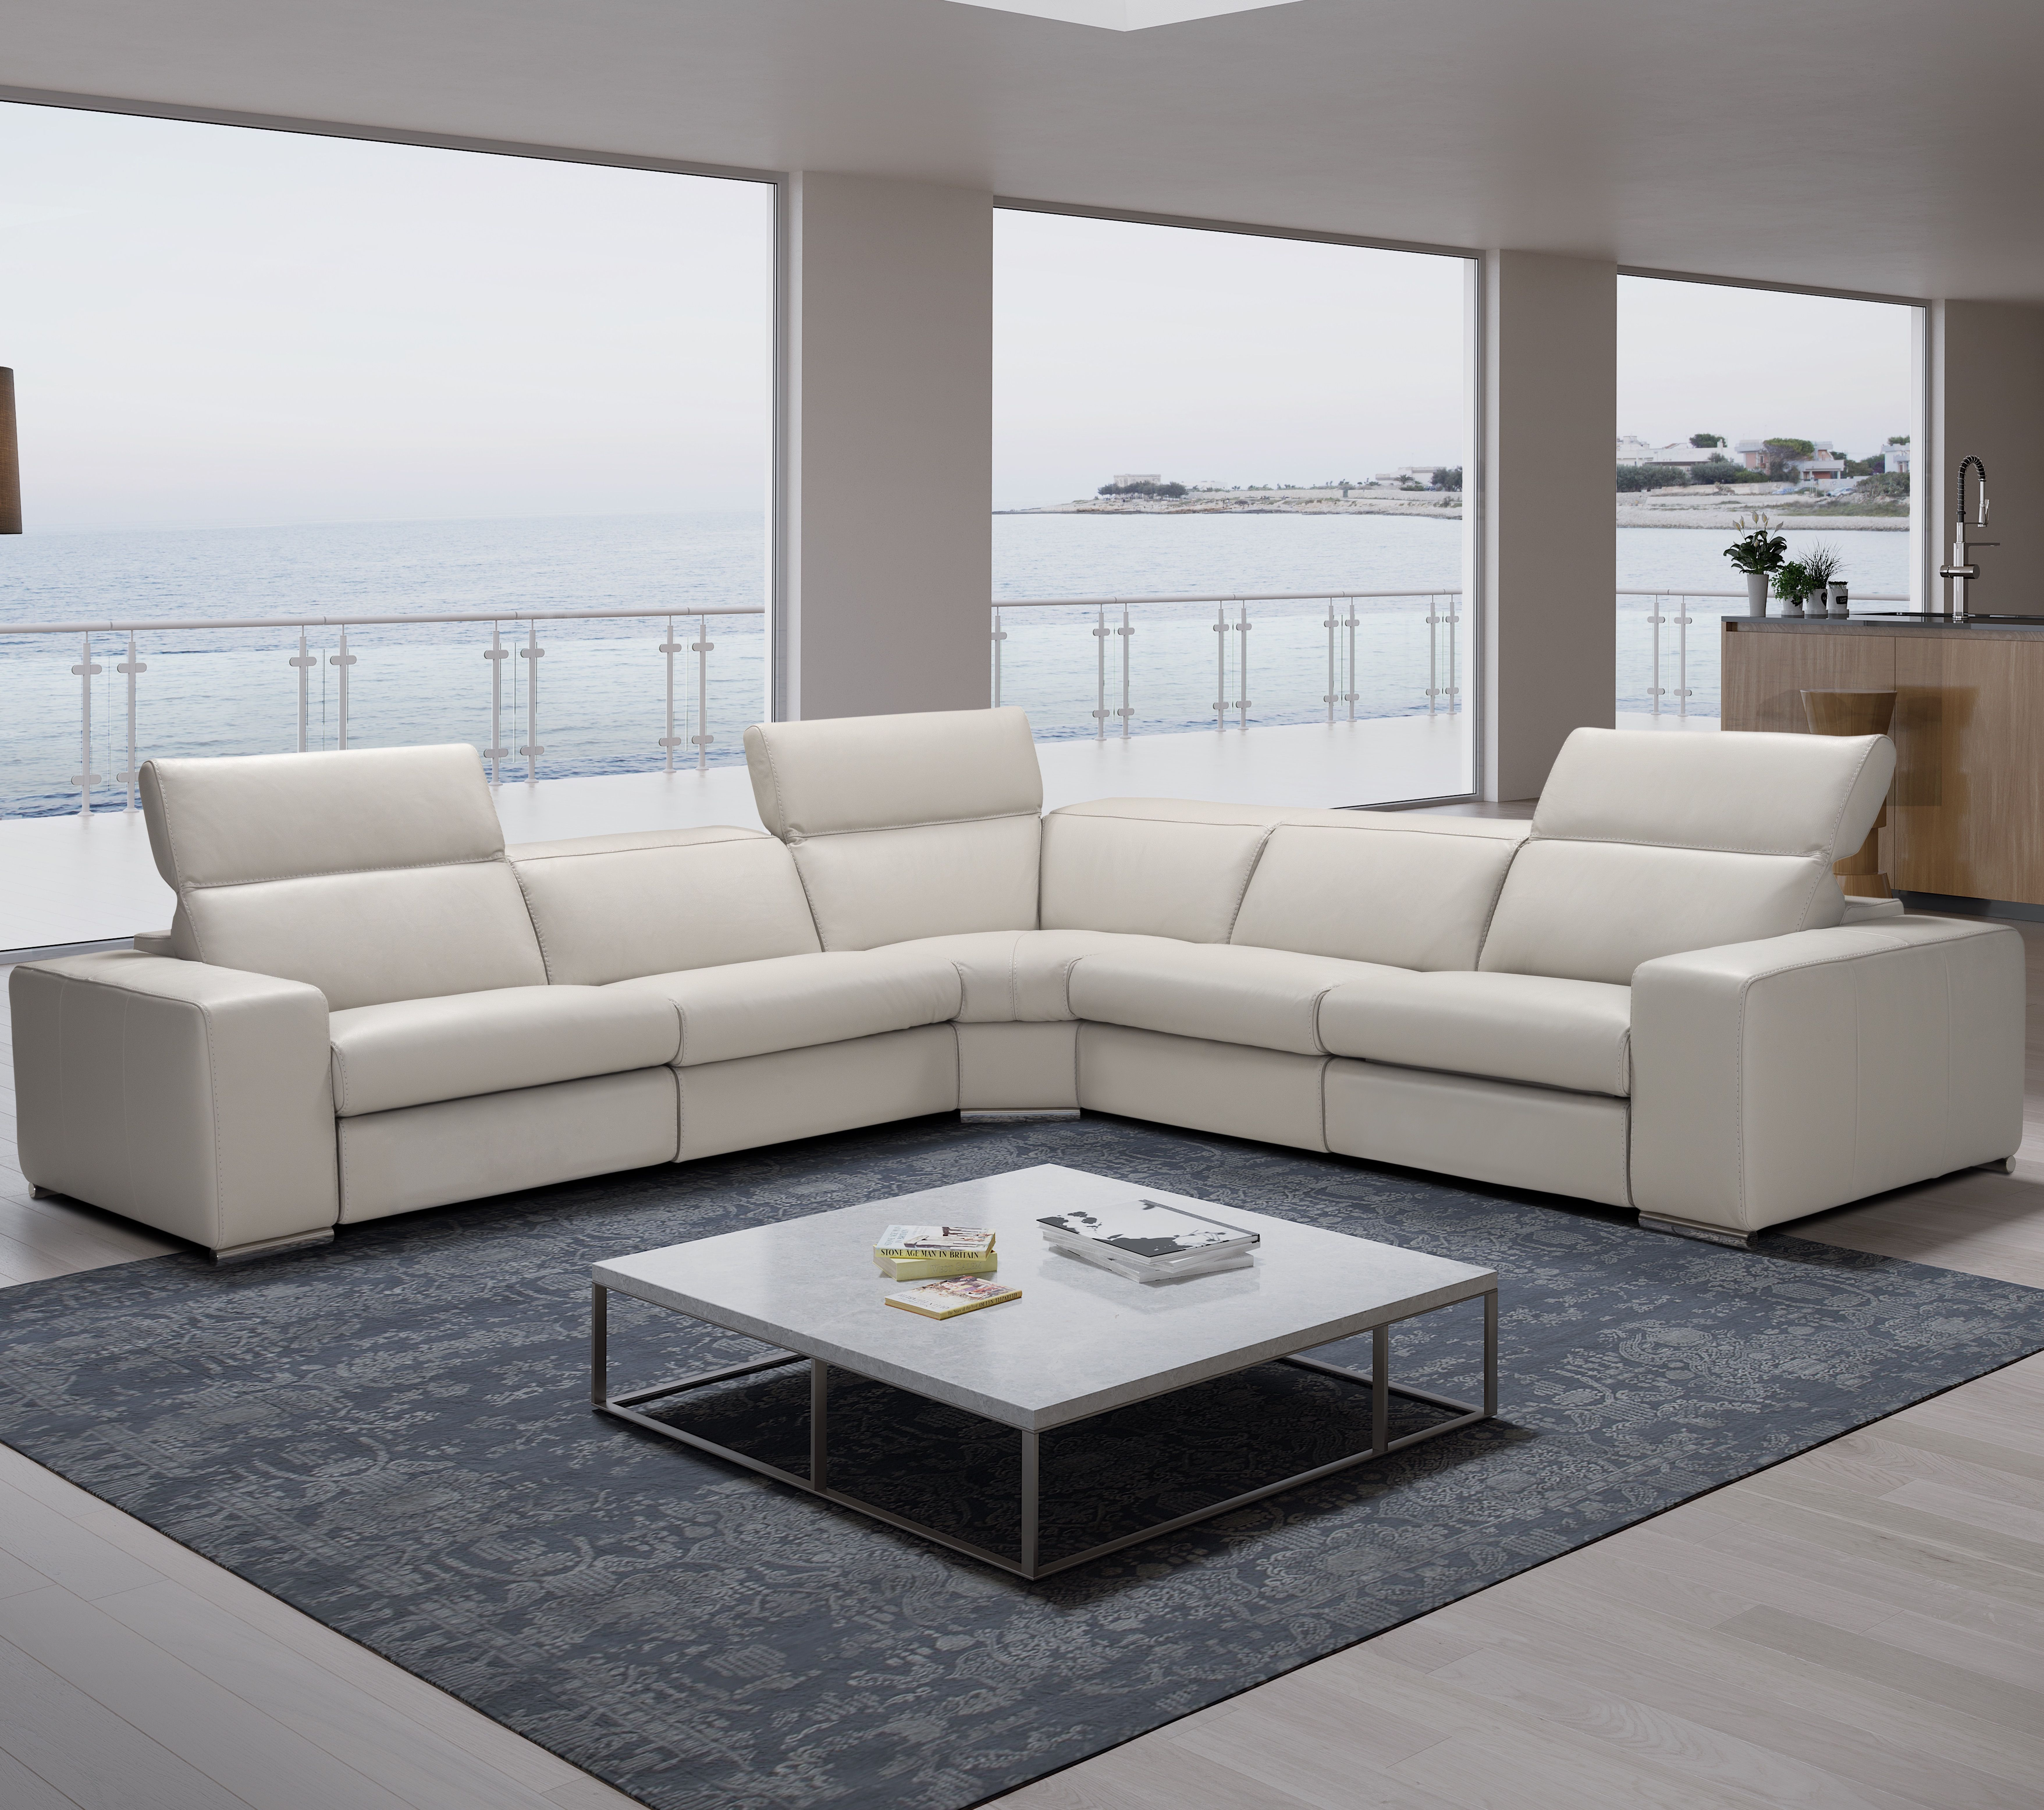 Lianne Power Sectional Sectional Sofa Furniture Modern Sofa Sectional